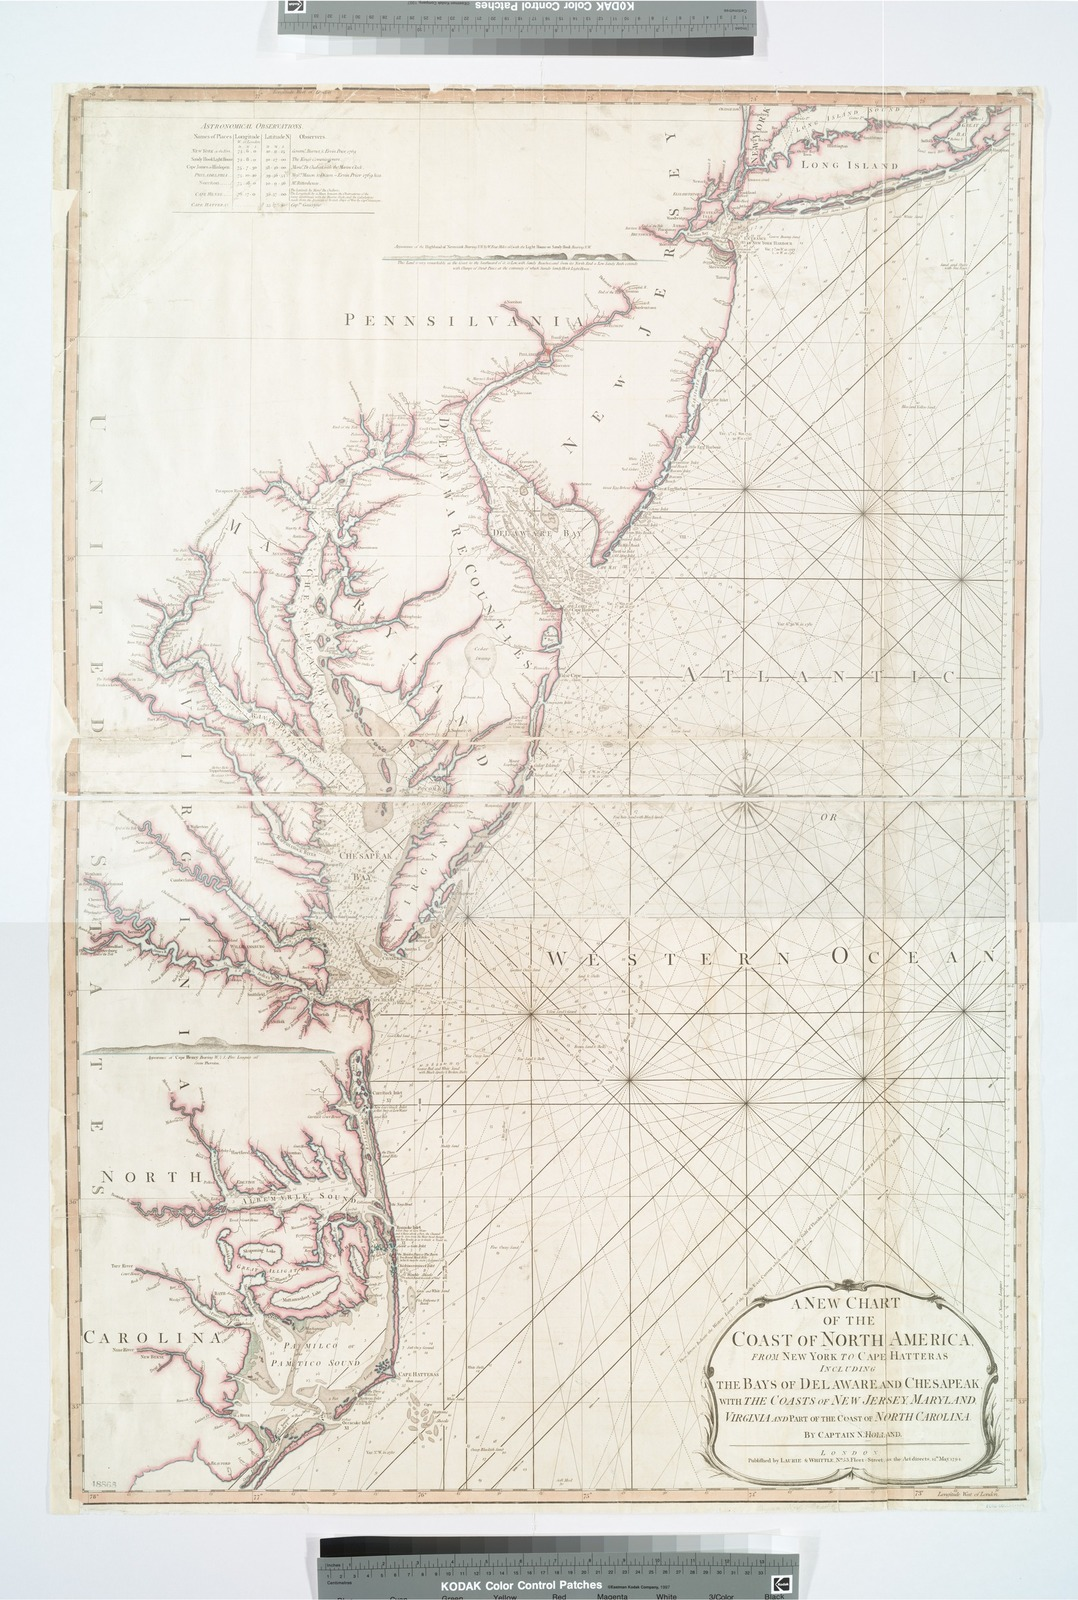 A new chart of the coast of North America : from New York to Cape Hatteras, including the bays of Delaware and Chesapeak, with the coasts of New Jersey, Maryland, Virginia and part of the coast of North Carolina